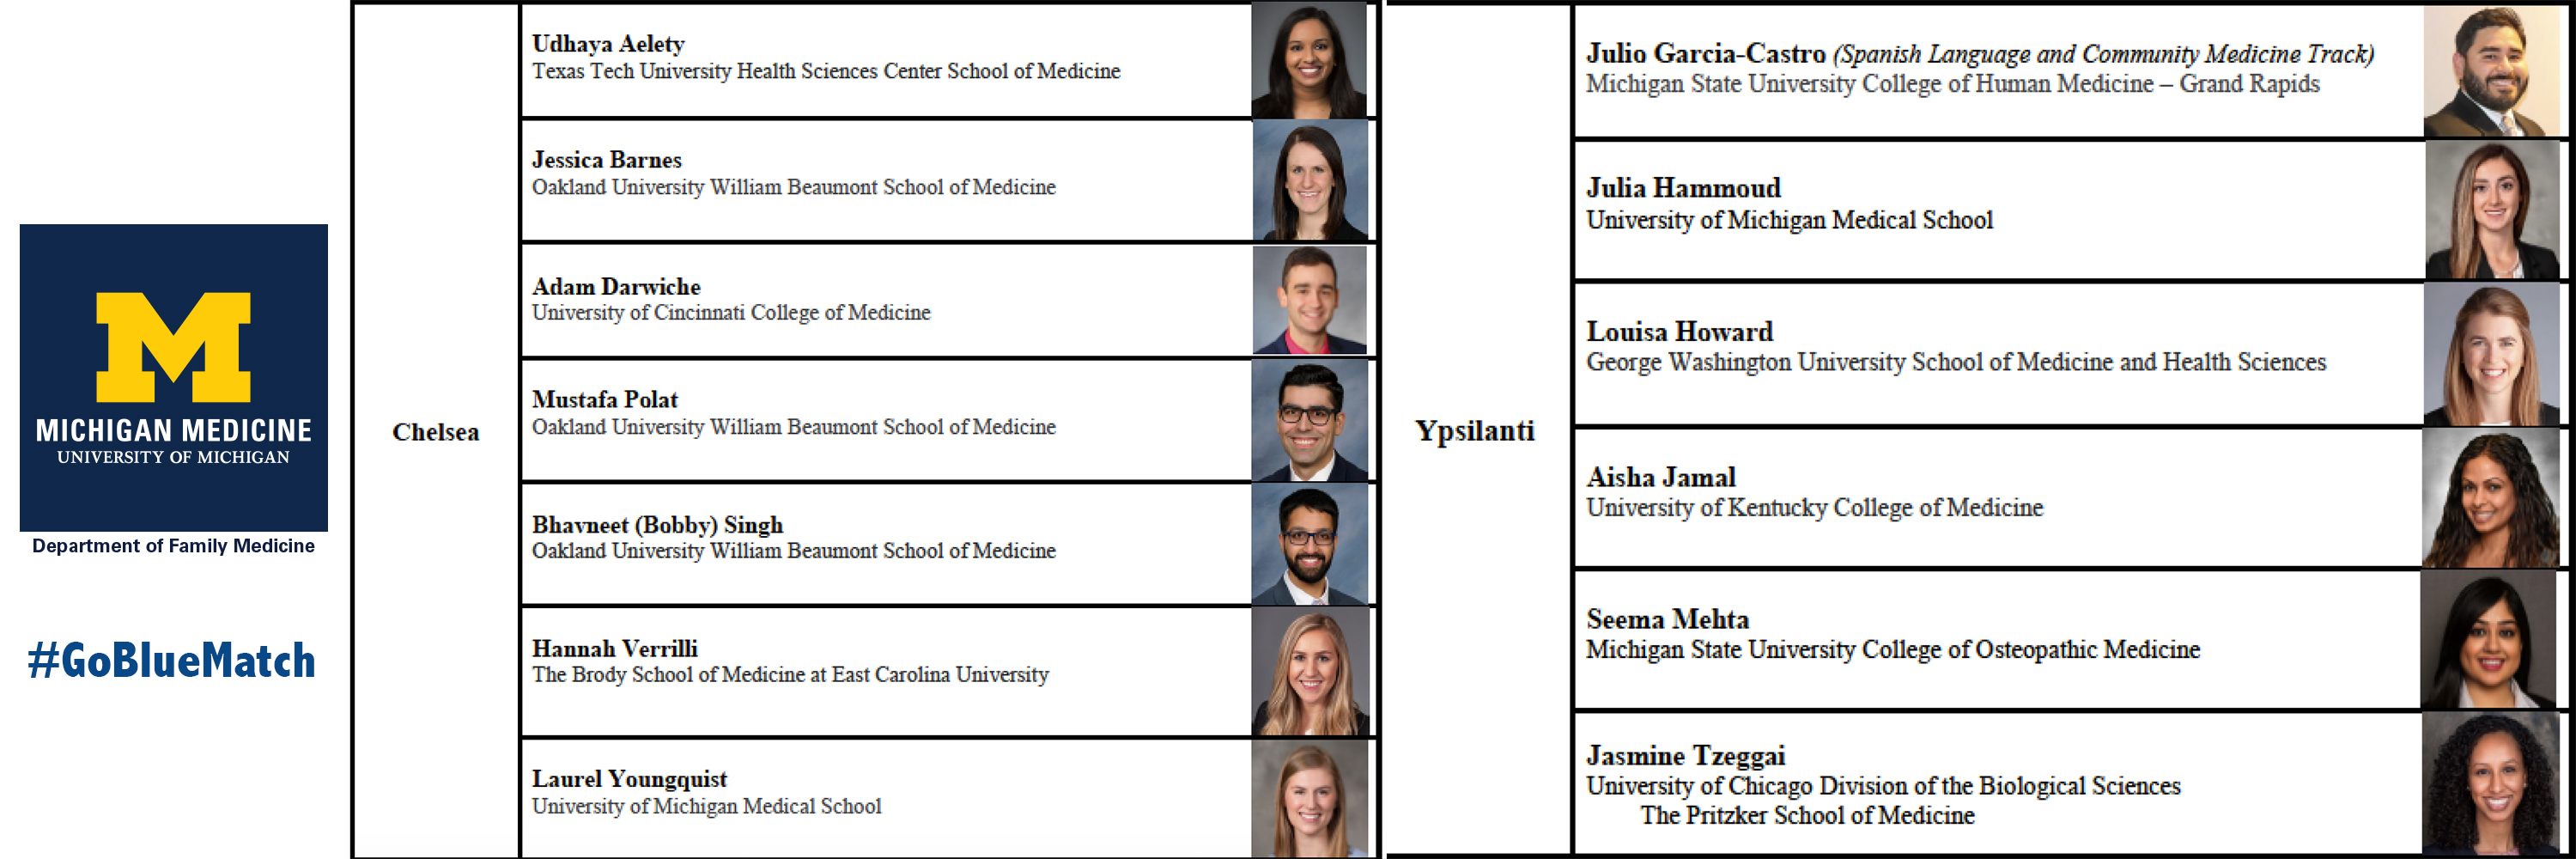 Headshots of all newly matched residents. Names and schools included in the text on the page below the image.